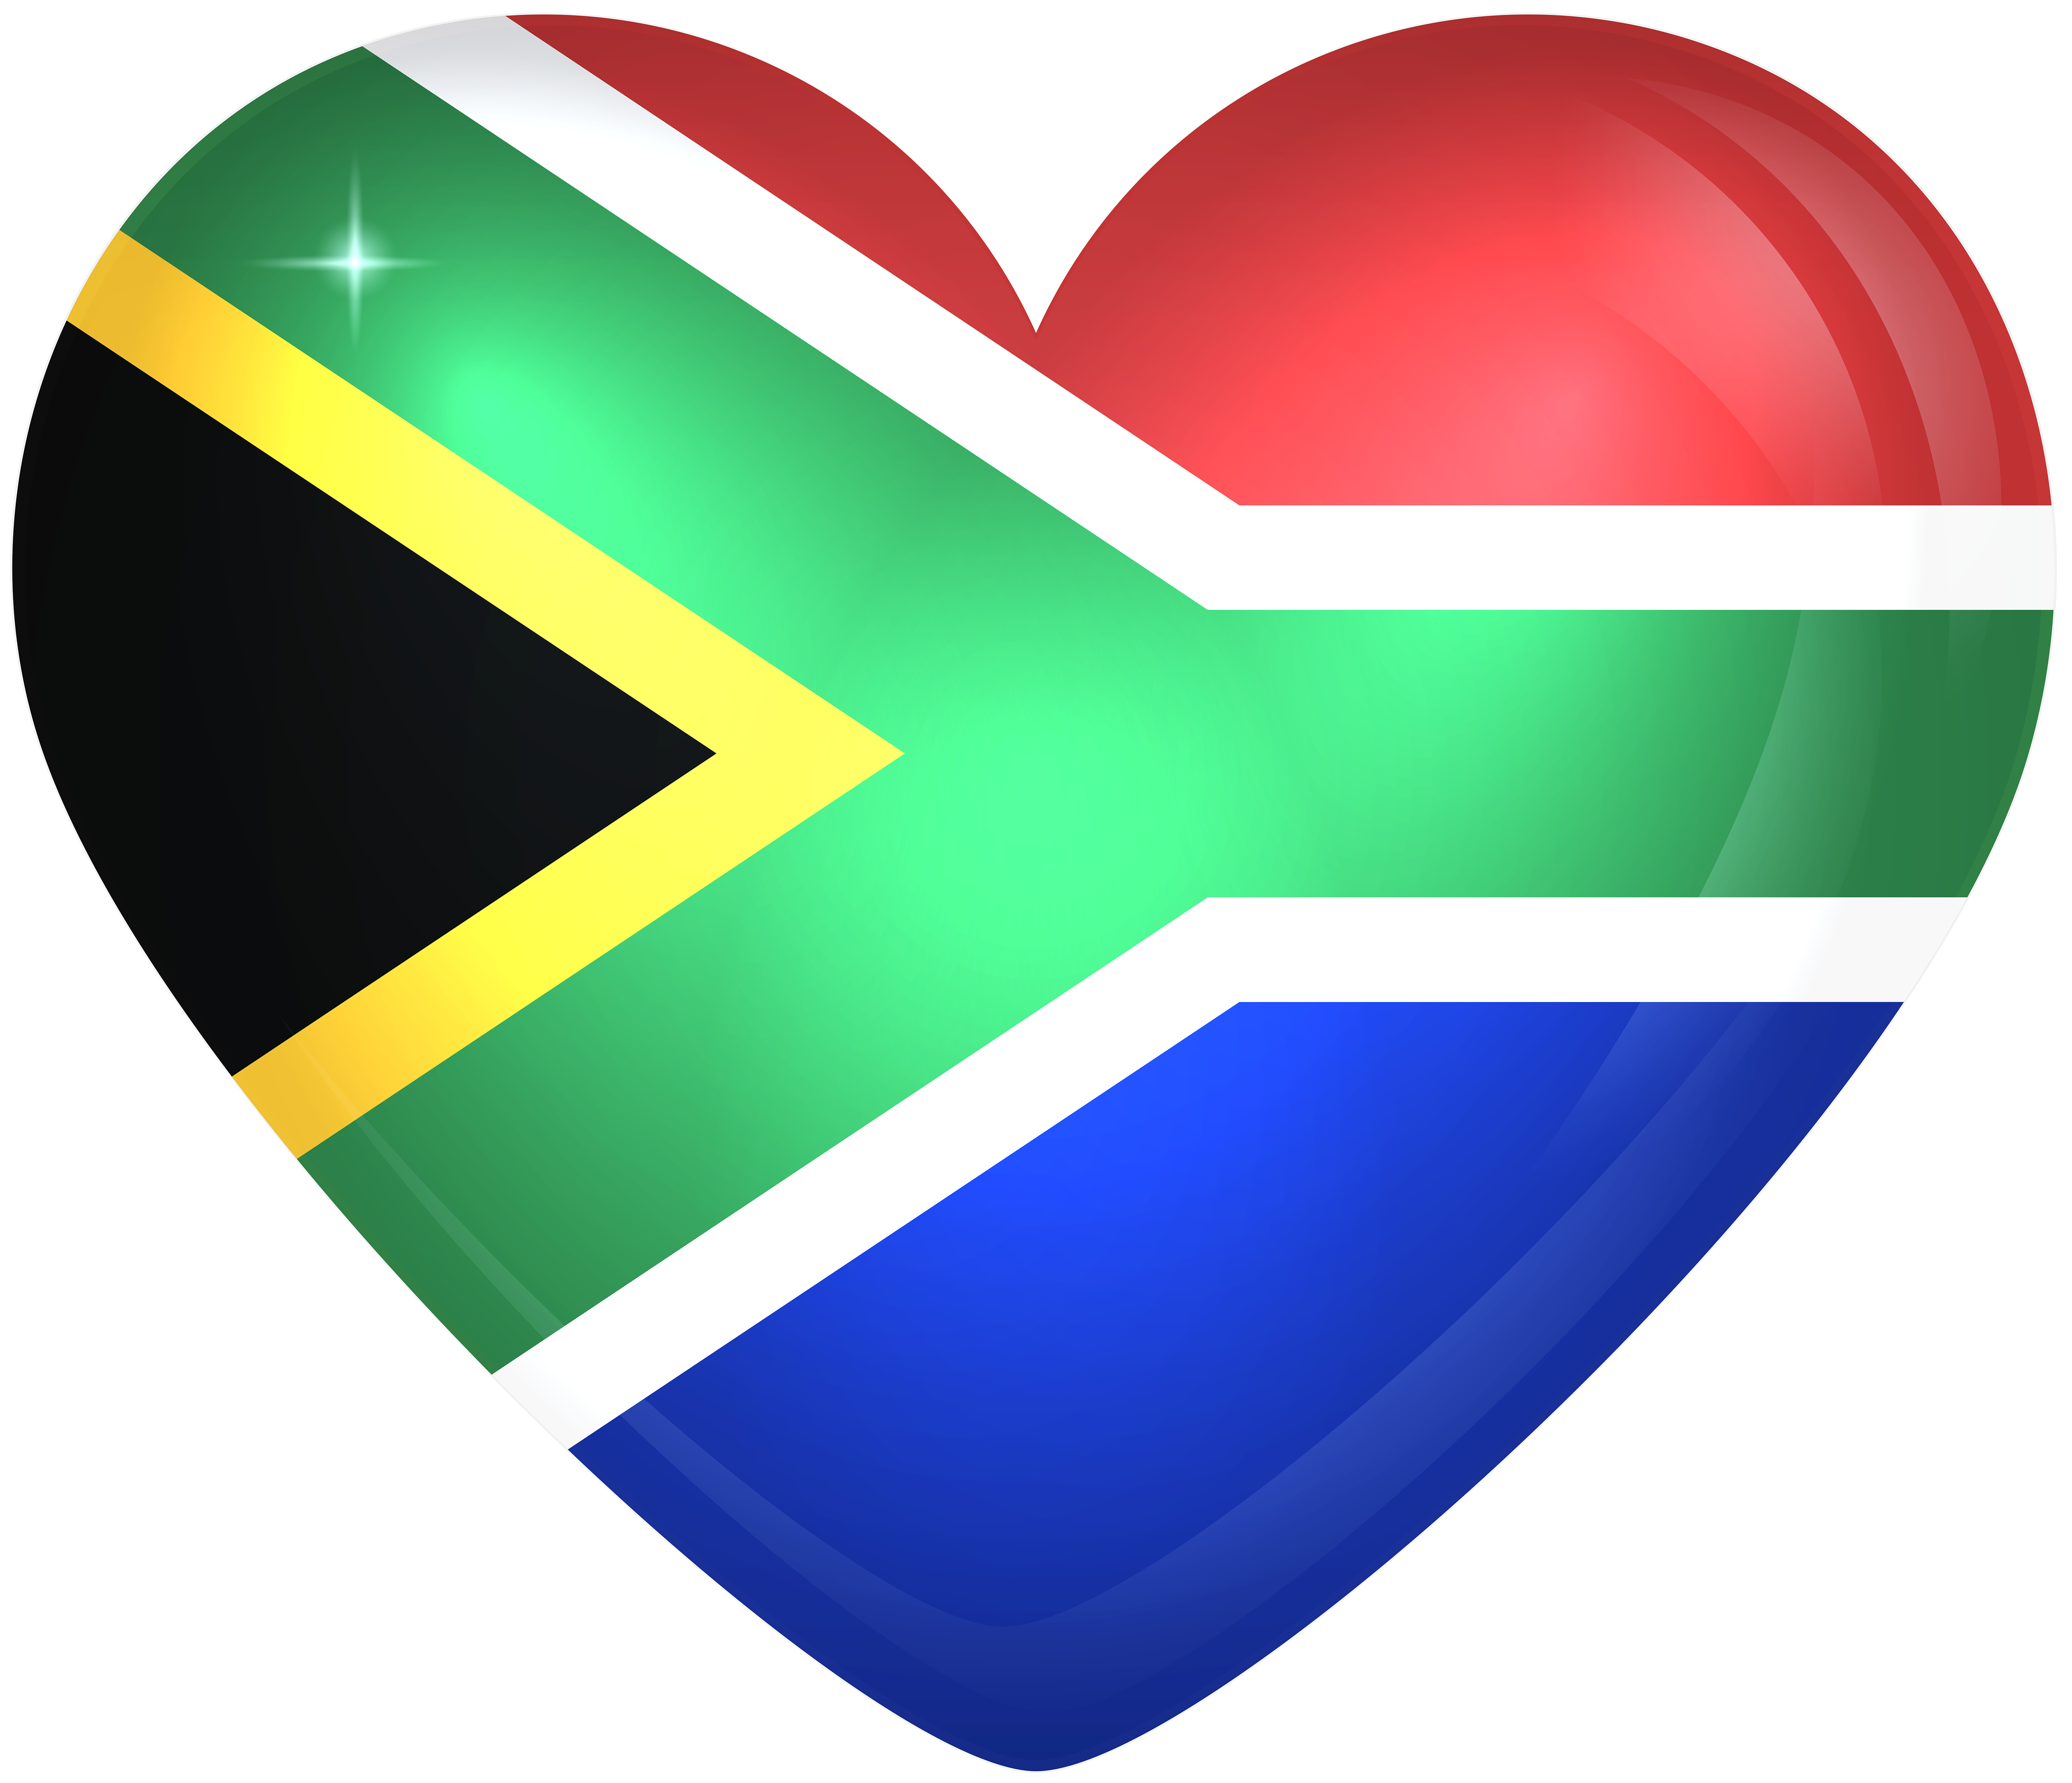 South africa large heart. Hearts clipart flag